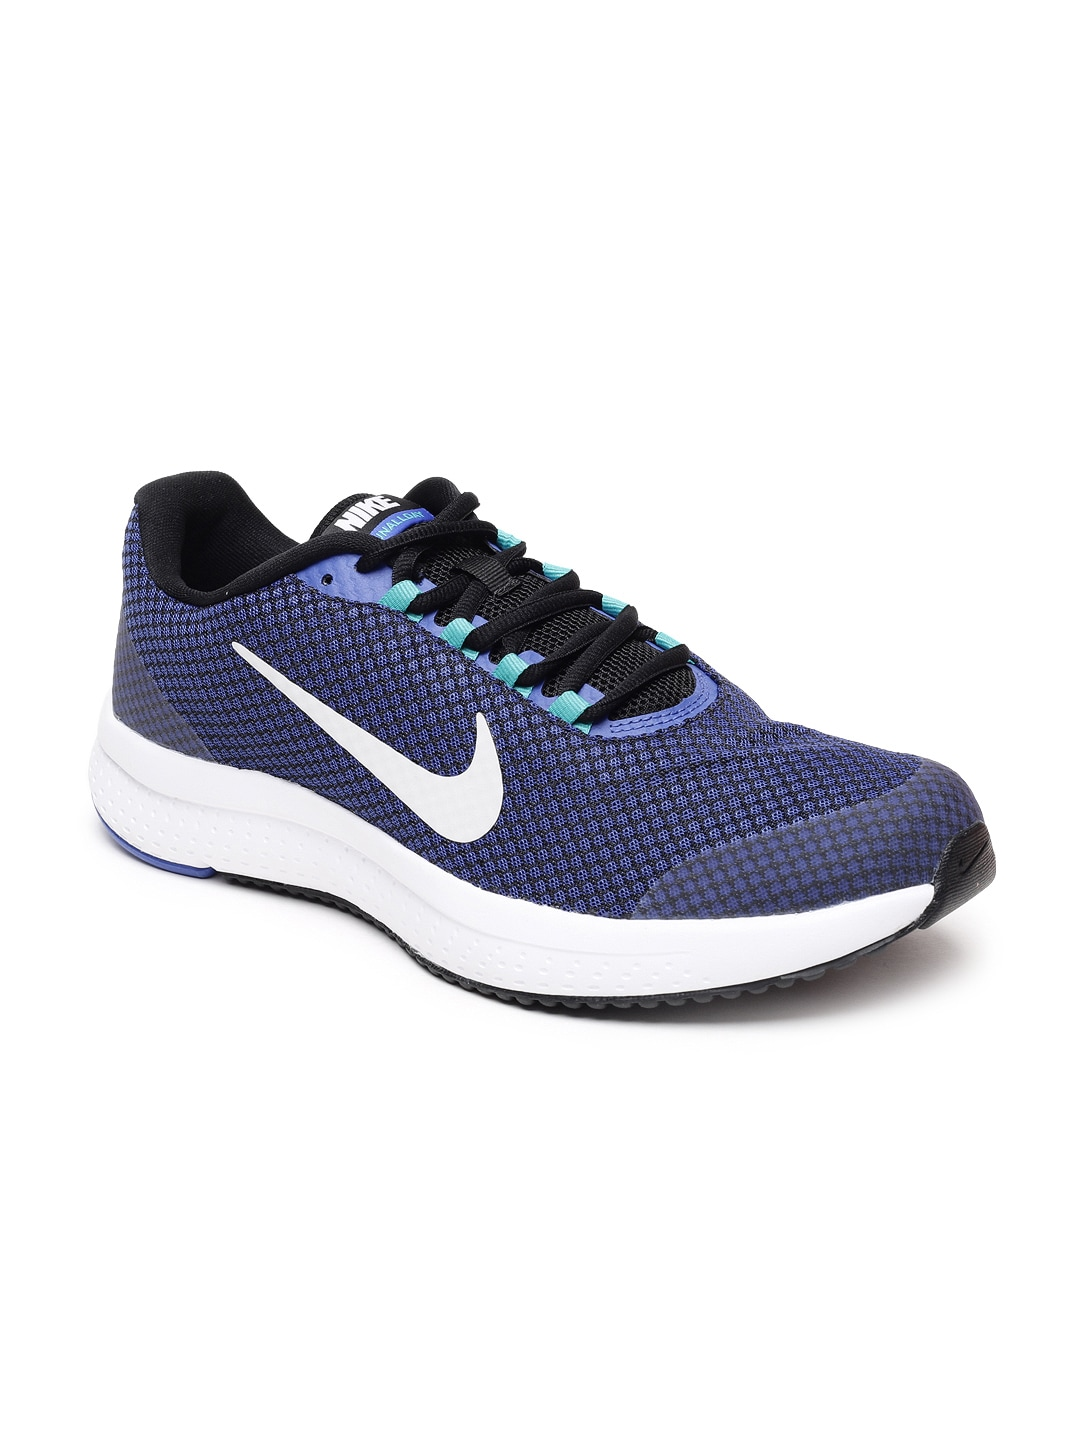 3d06a4d4f19a Nike Shoes - Buy Nike Shoes for Men